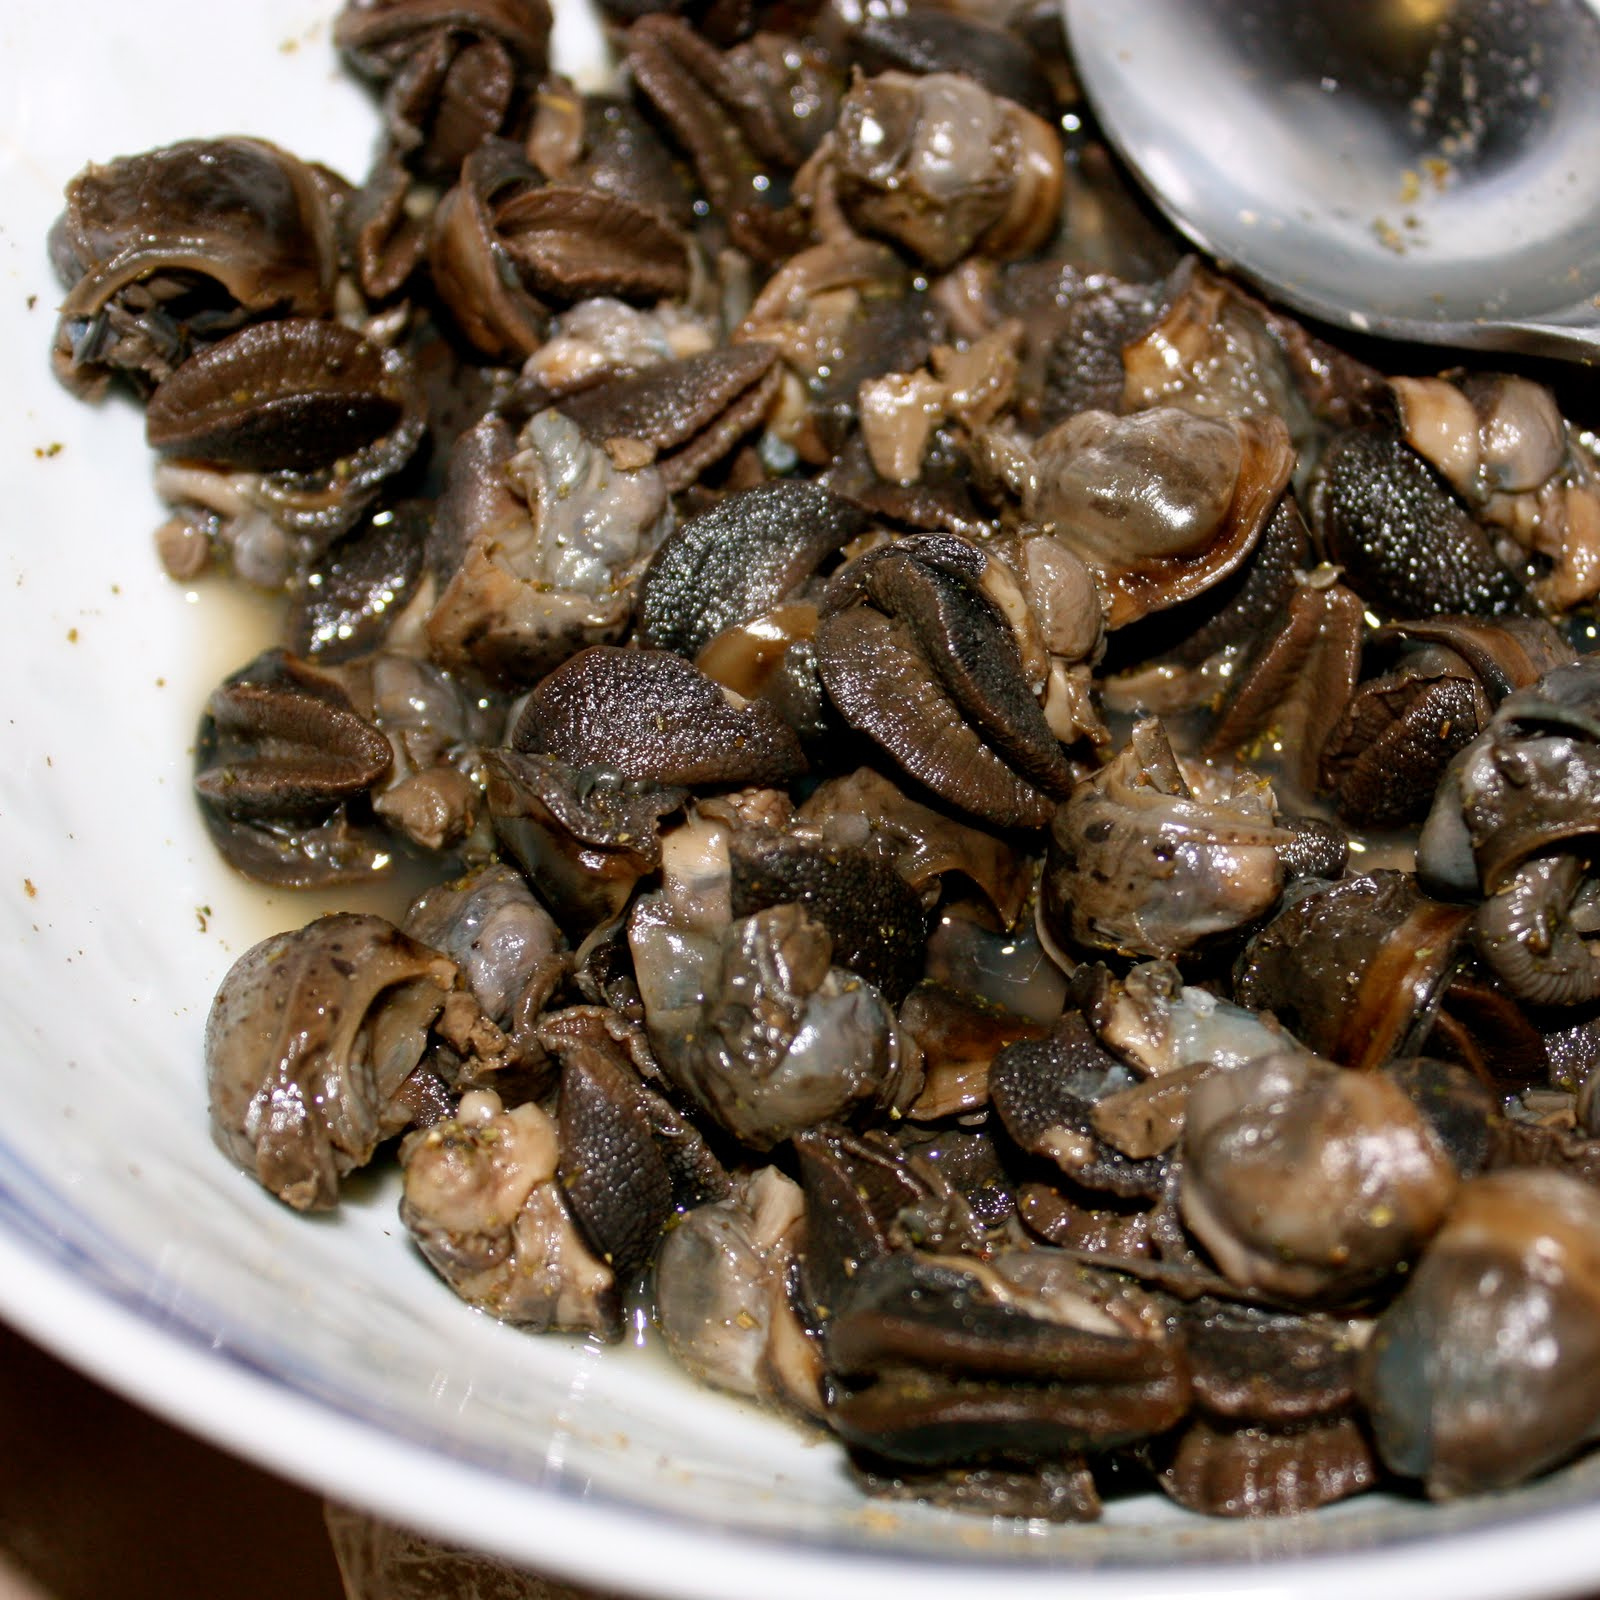 Escargot Recipes Without Shell